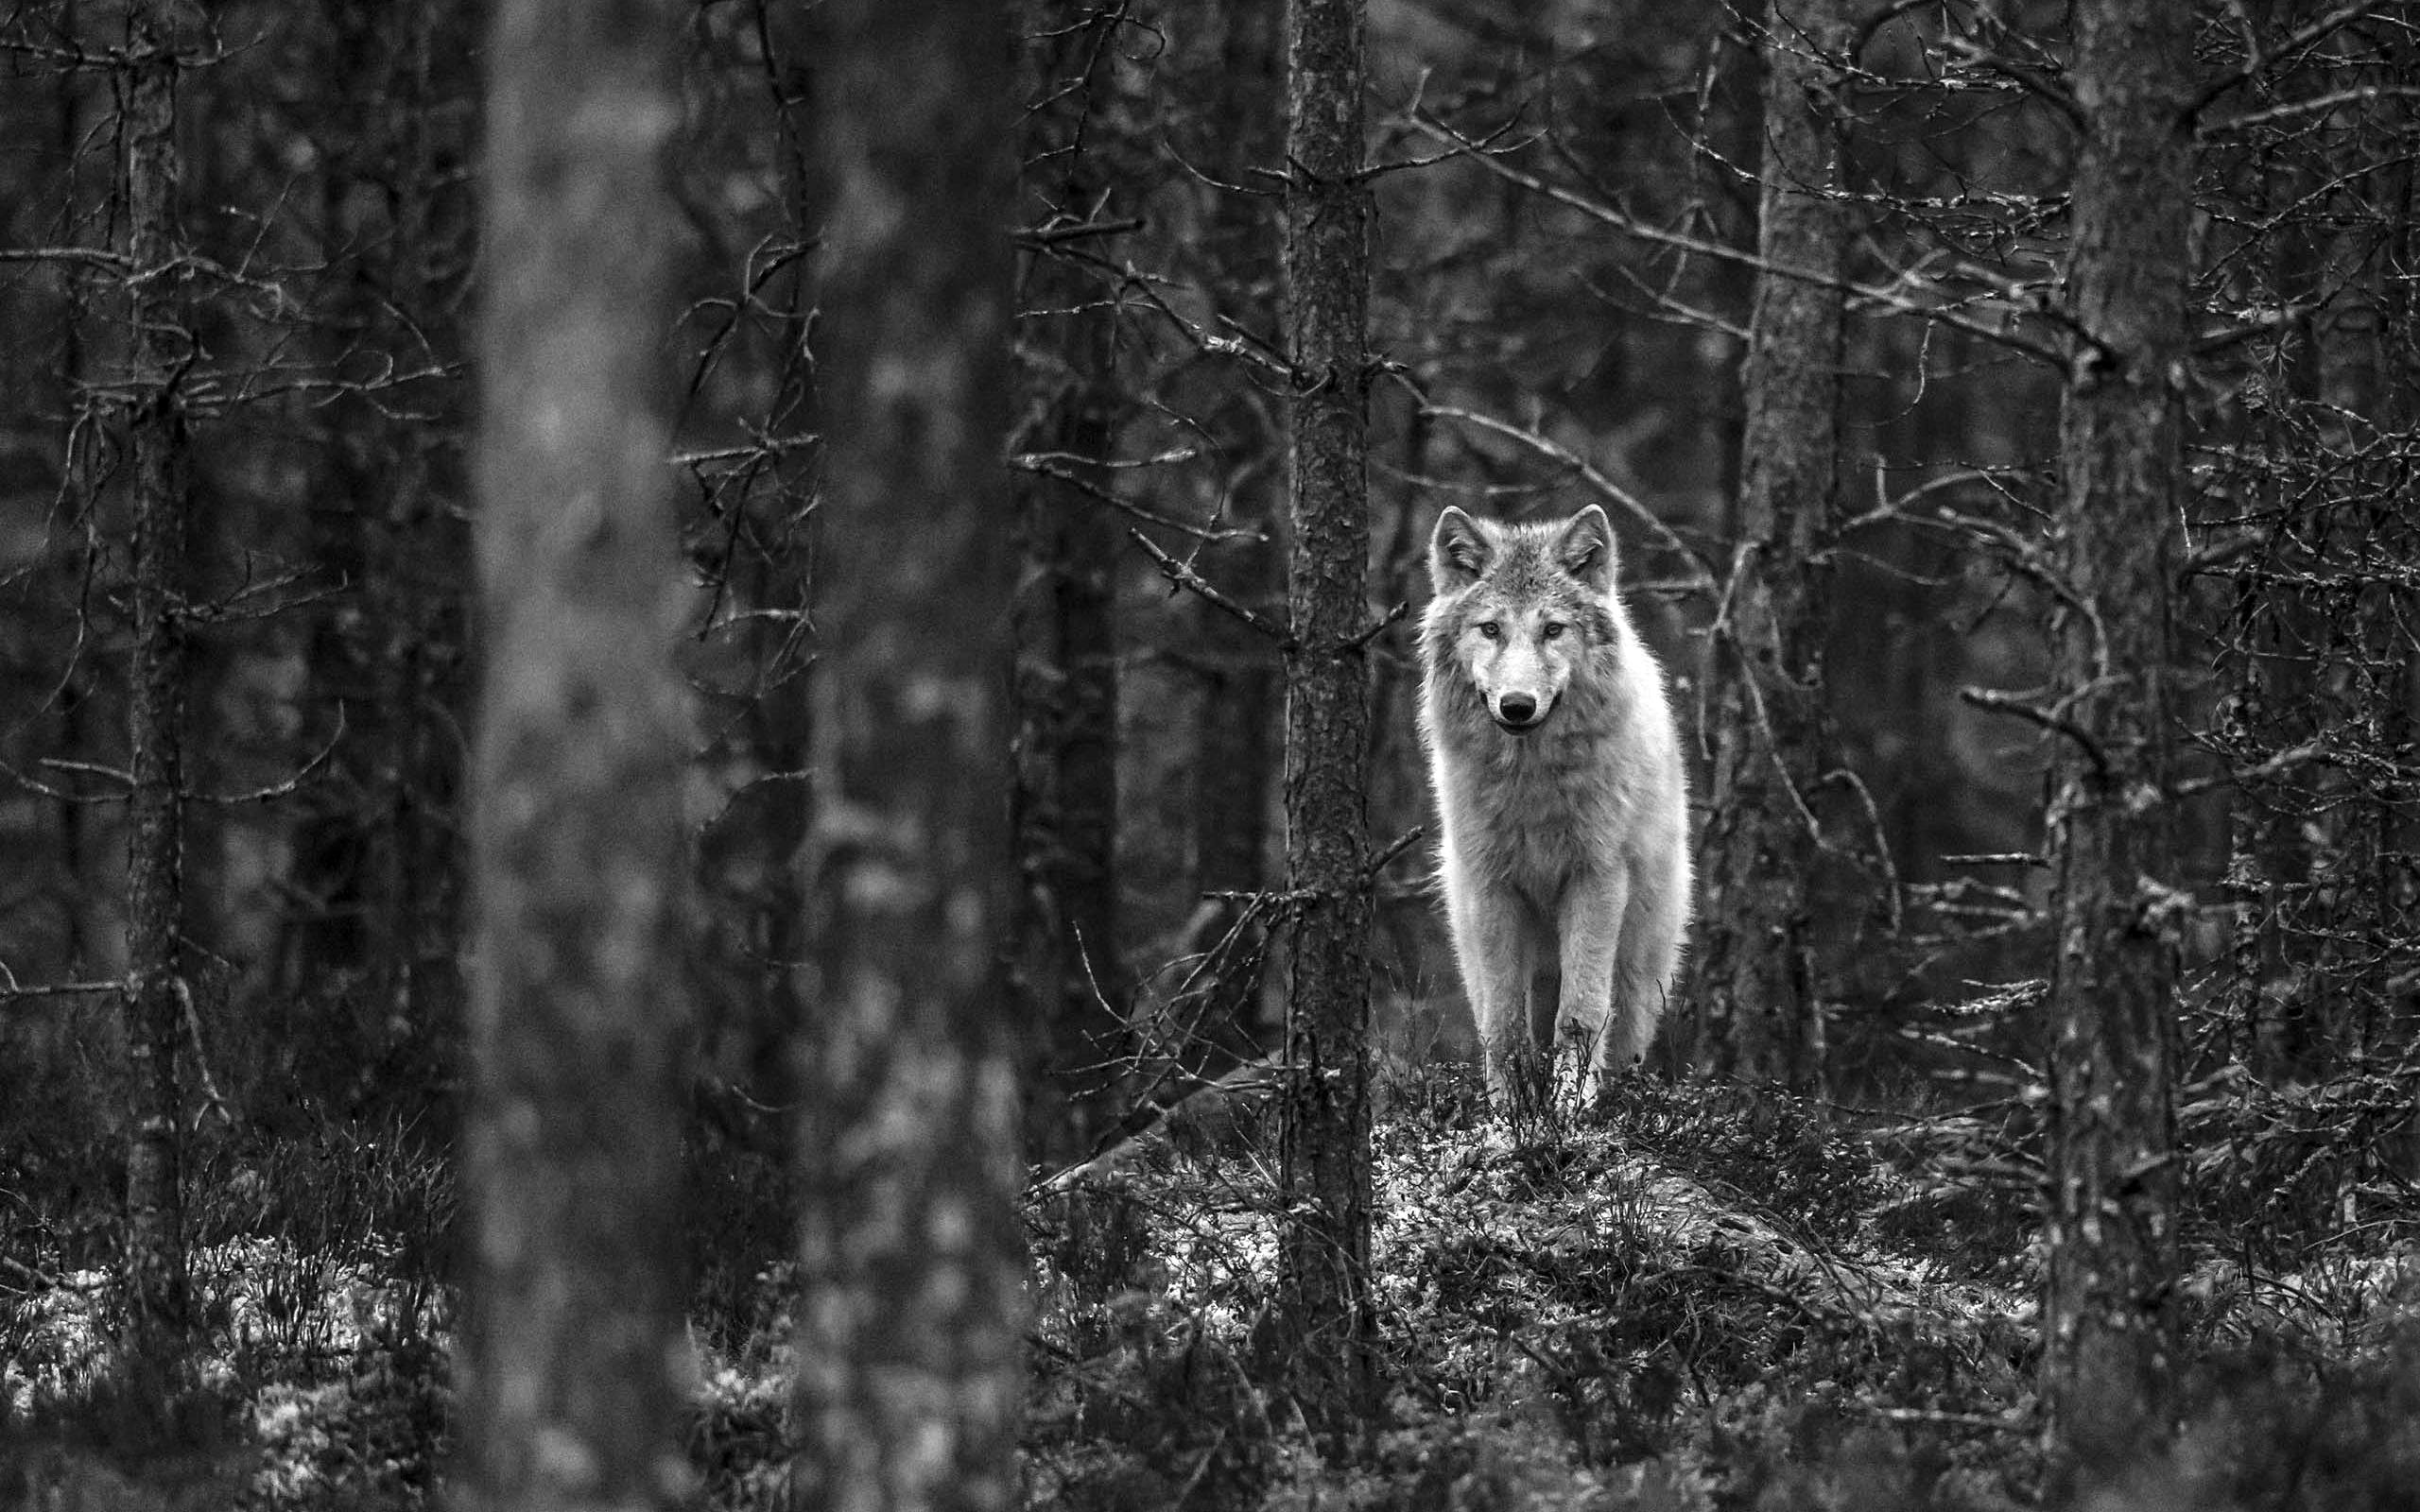 2560x1440 Wolf Walking In Jungle Monochrome 1440p Resolution Wallpaper Hd Animals 4k Wallpapers Images Photos And Background